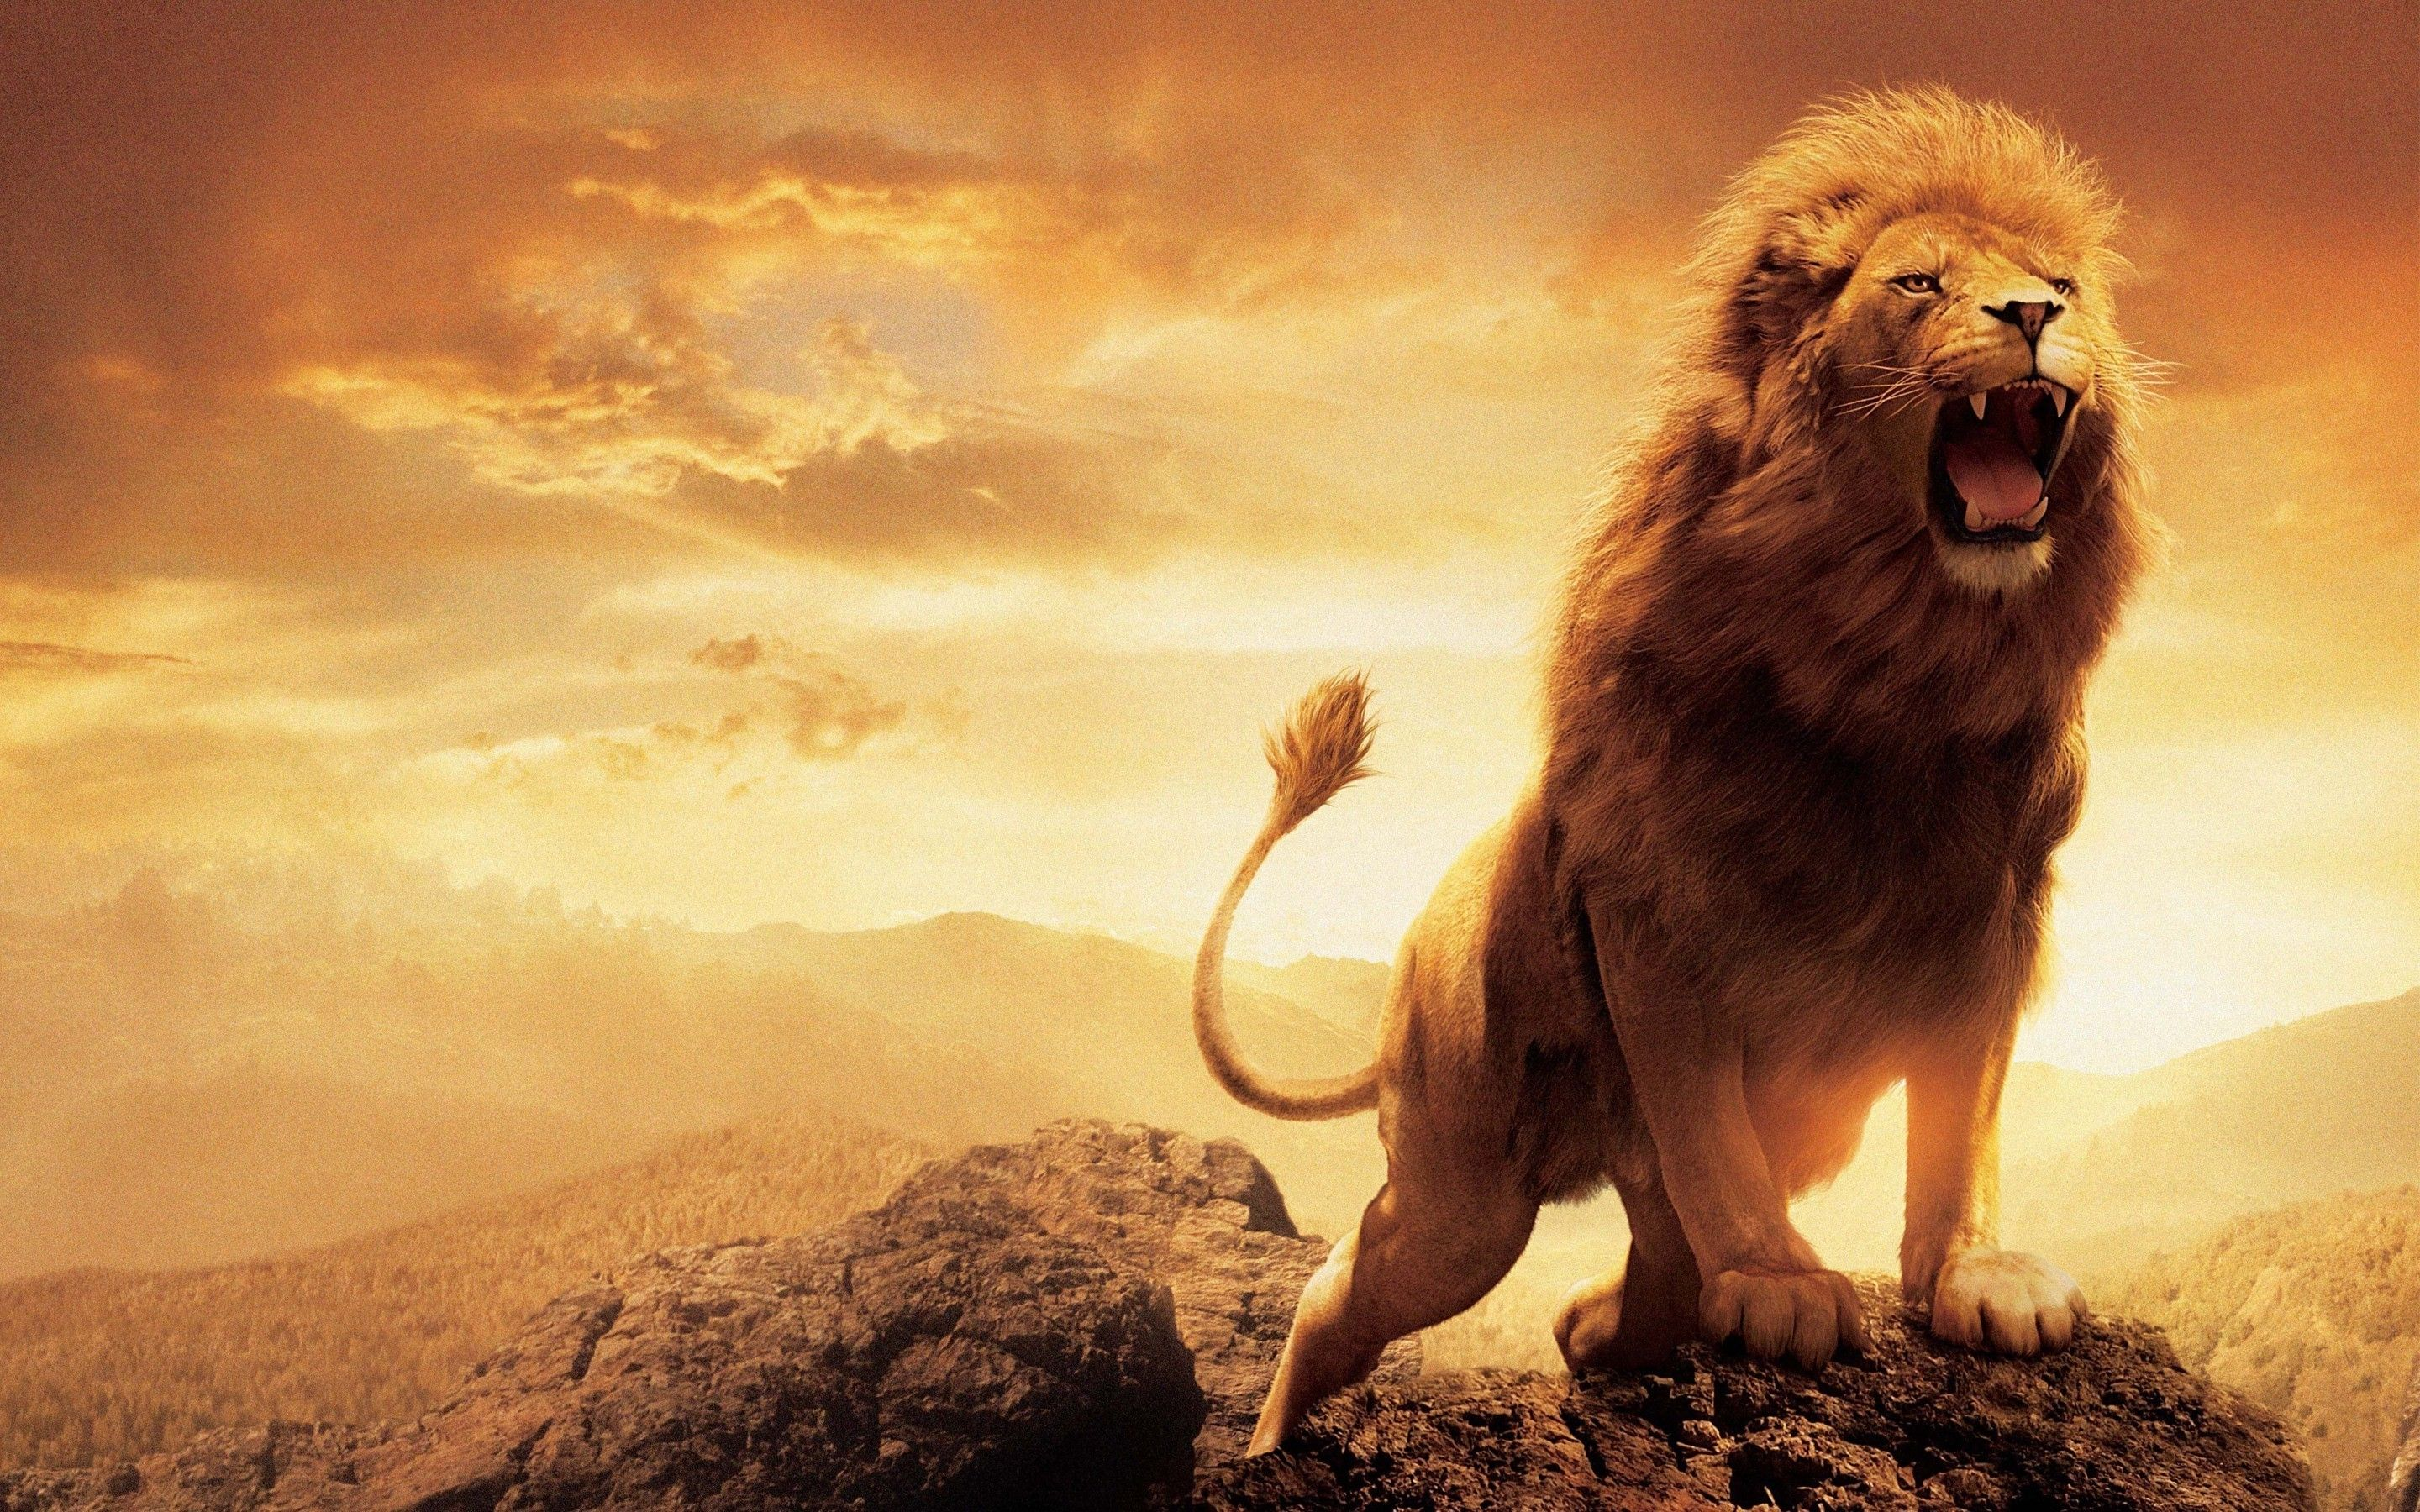 Most Inspiring Wallpaper Logo Lion - 62b30a6ae471c0e0132a89a3d238e971  Perfect Image Reference_366112.jpg